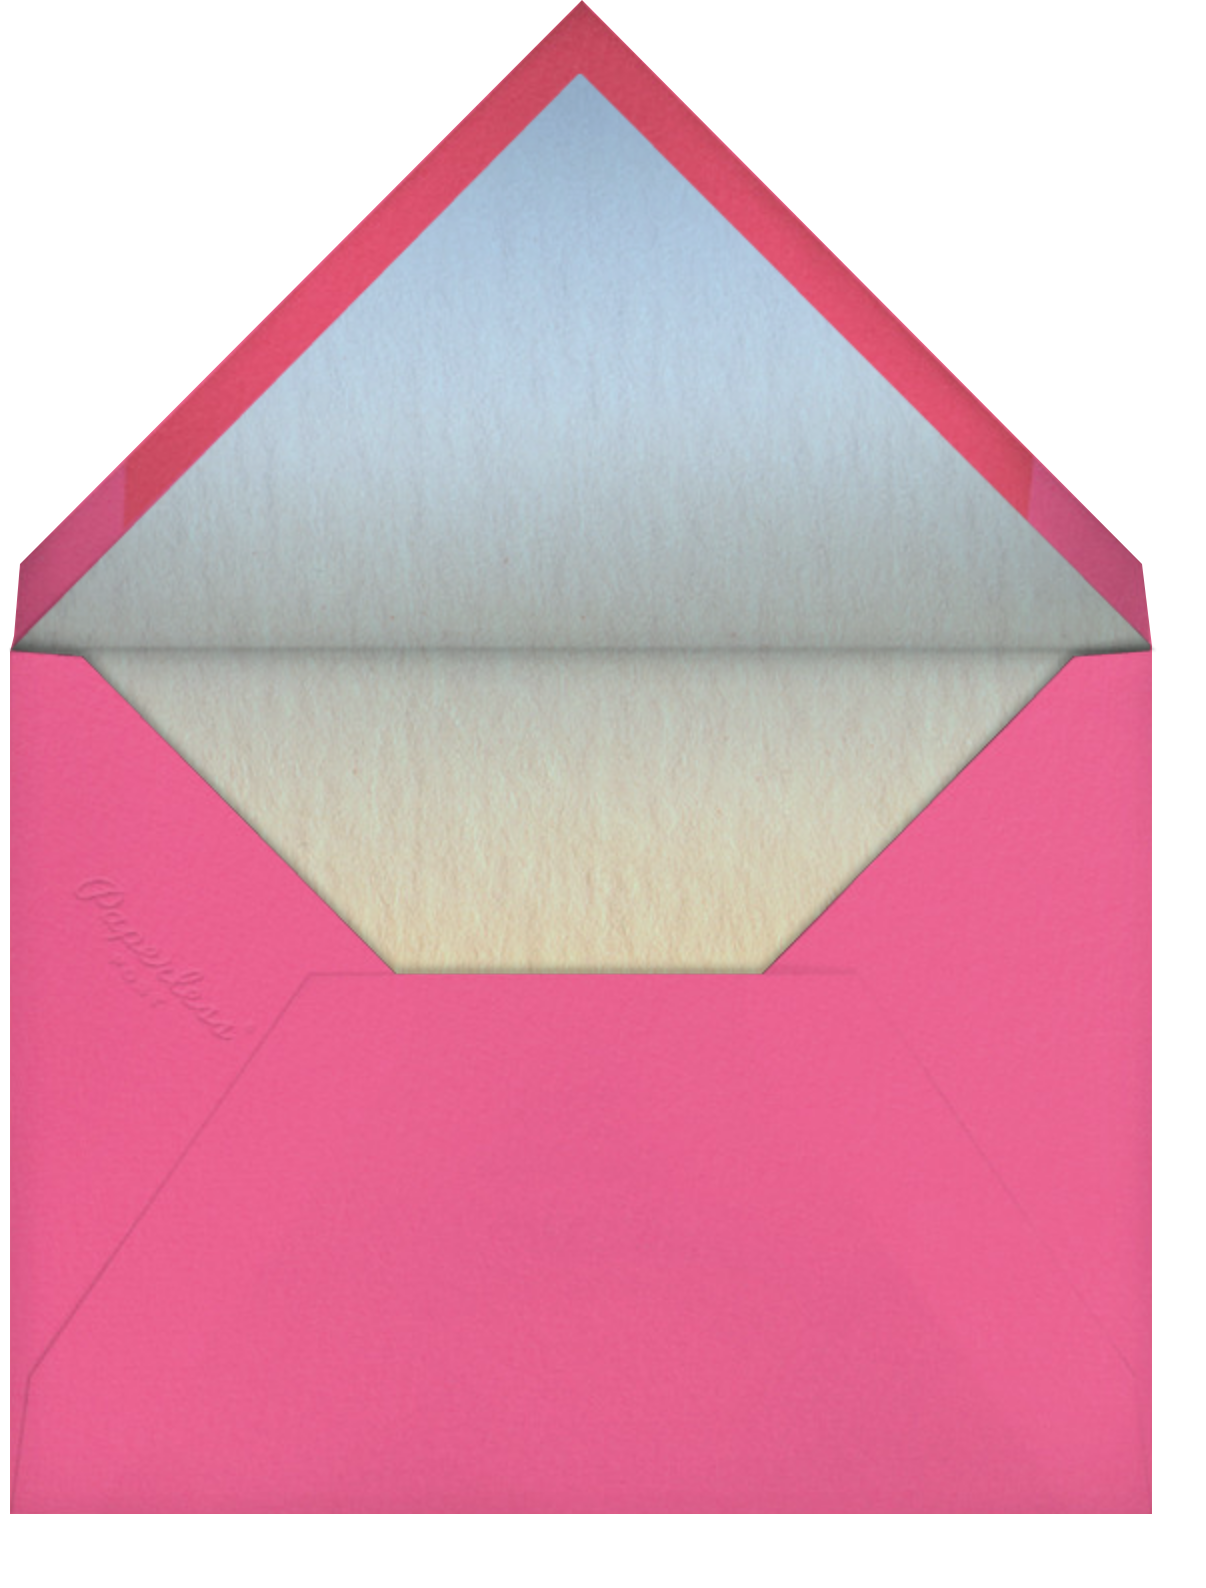 Foam Me To You - Paperless Post - Thinking of you - envelope back